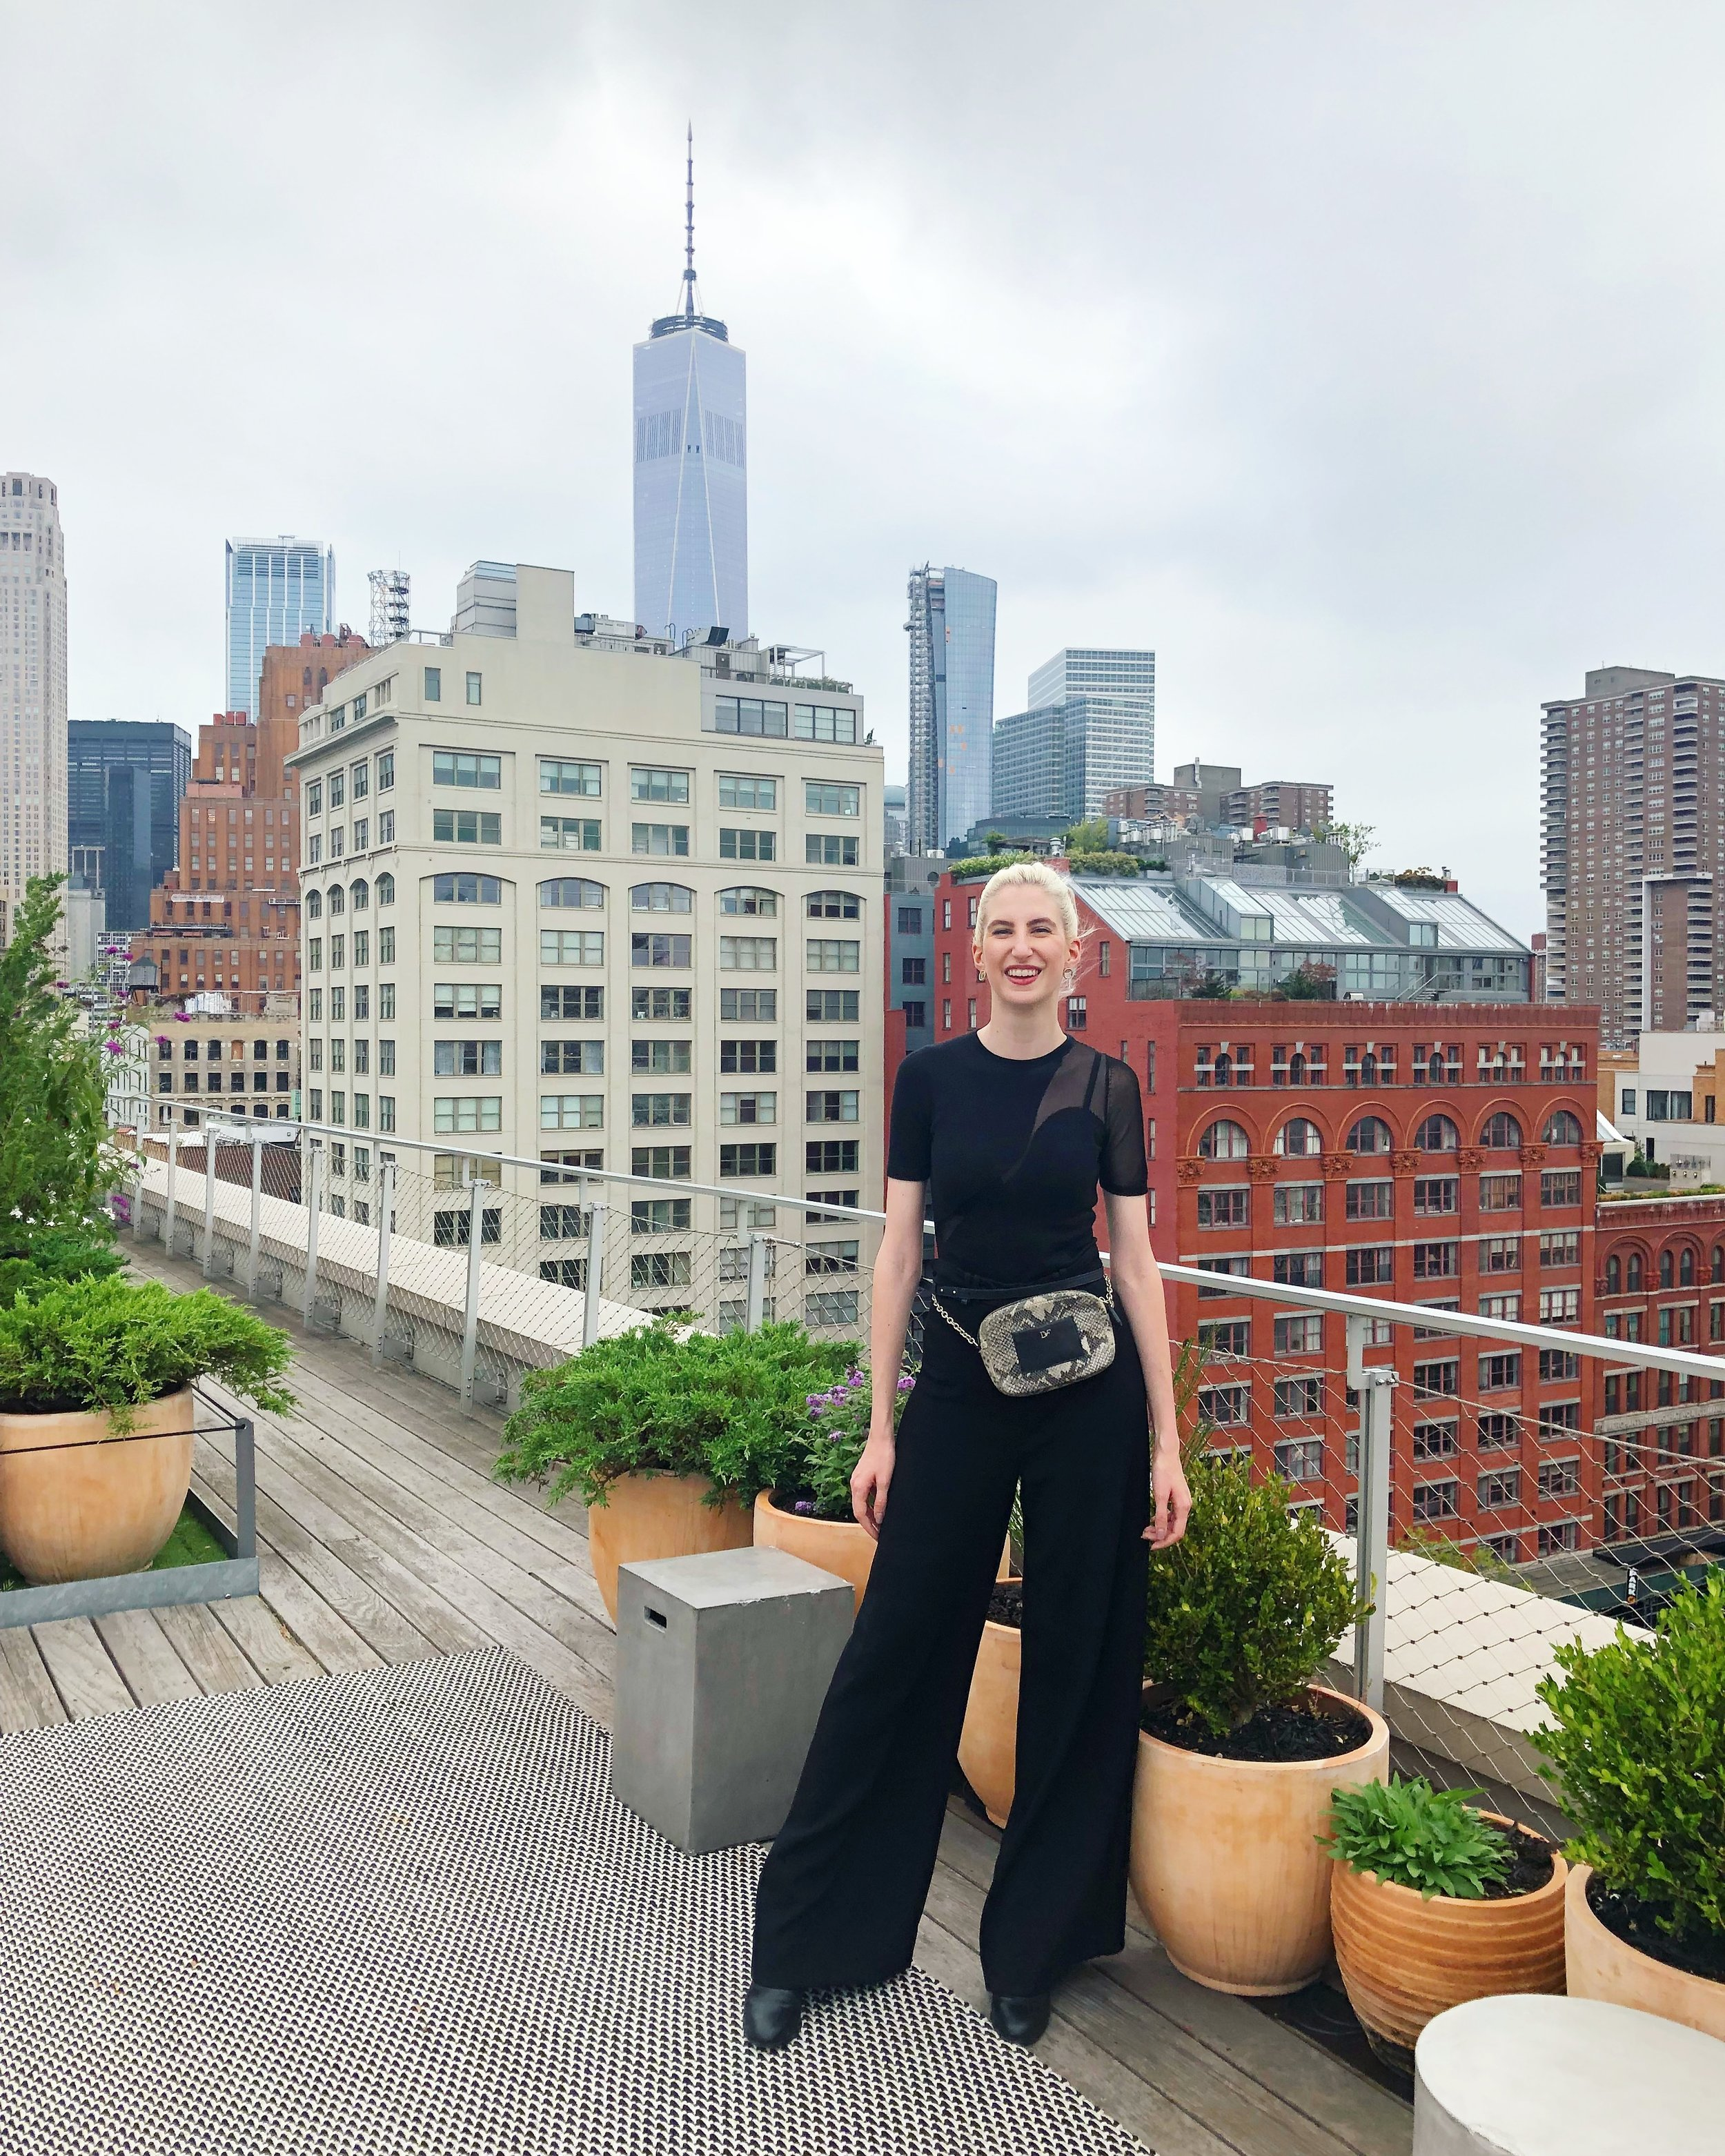 Spring Studios Rooftop Party after SS19 runway